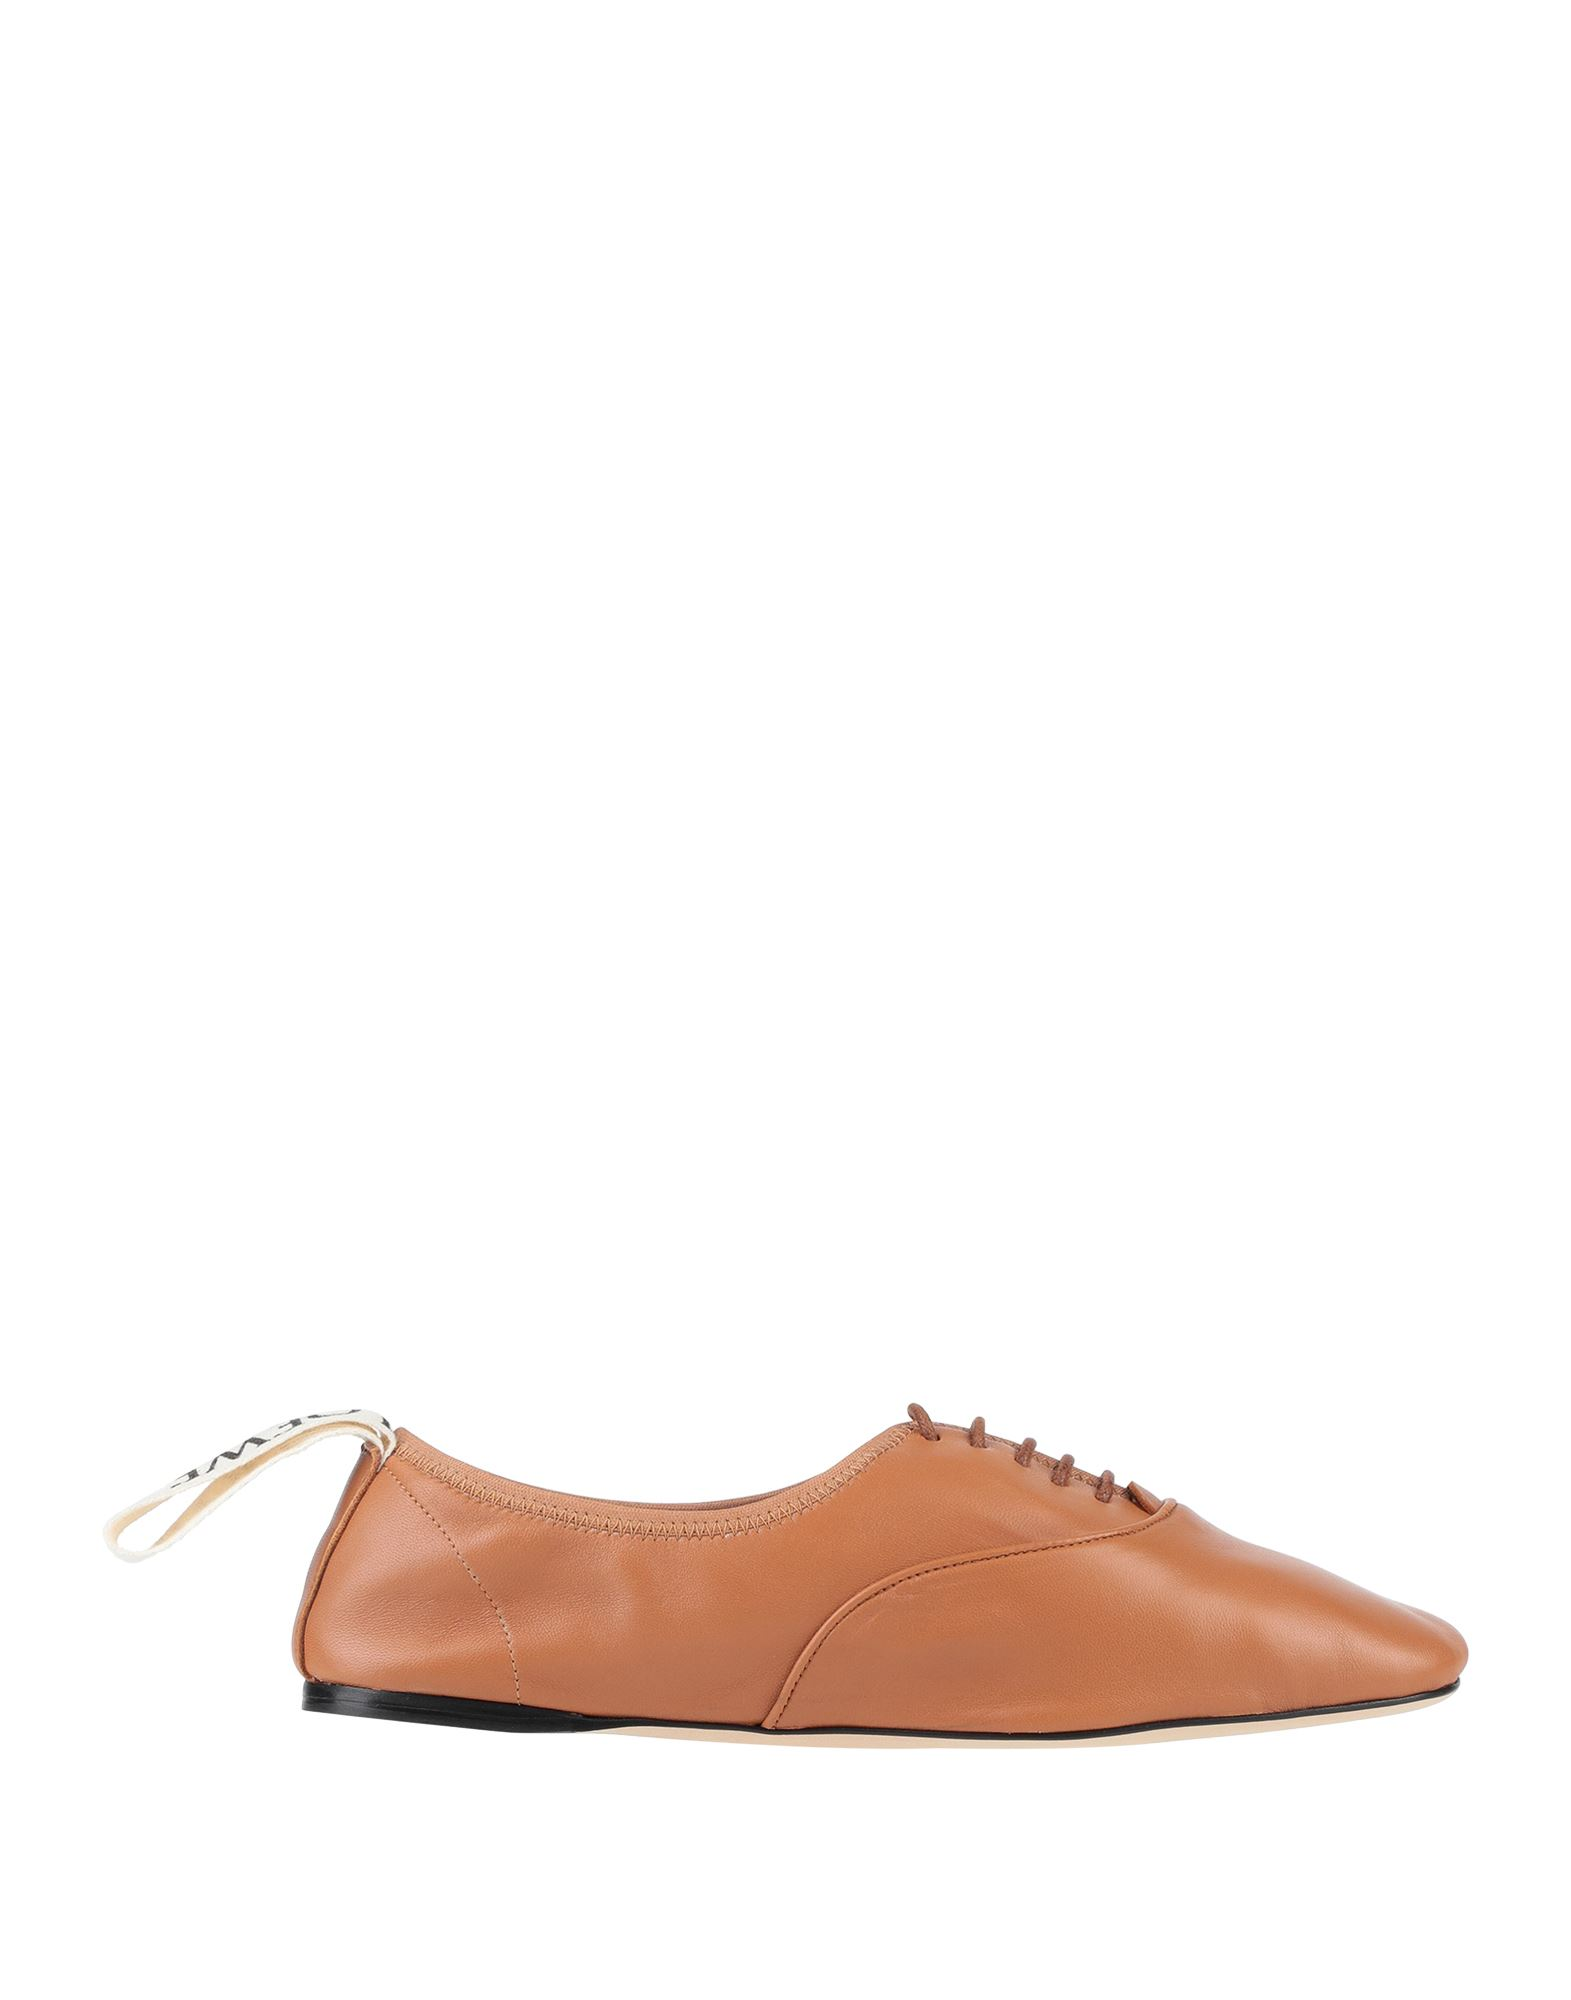 LOEWE Lace-up shoes. logo, solid color, round toeline, flat, leather lining, leather sole, contains non-textile parts of animal origin. Soft Leather